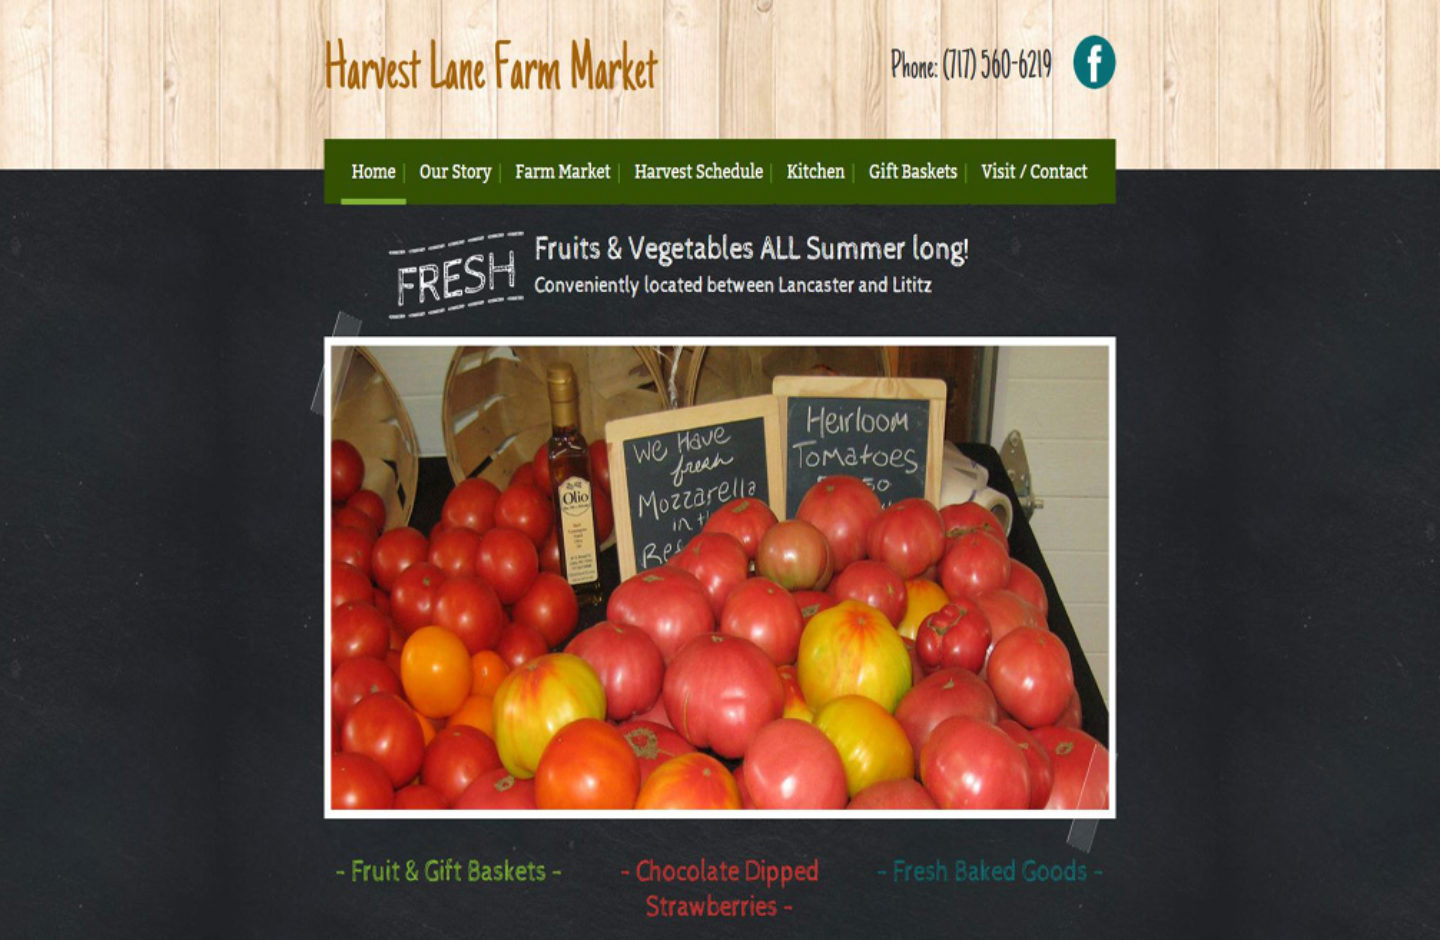 Harvest Lane Farm Market